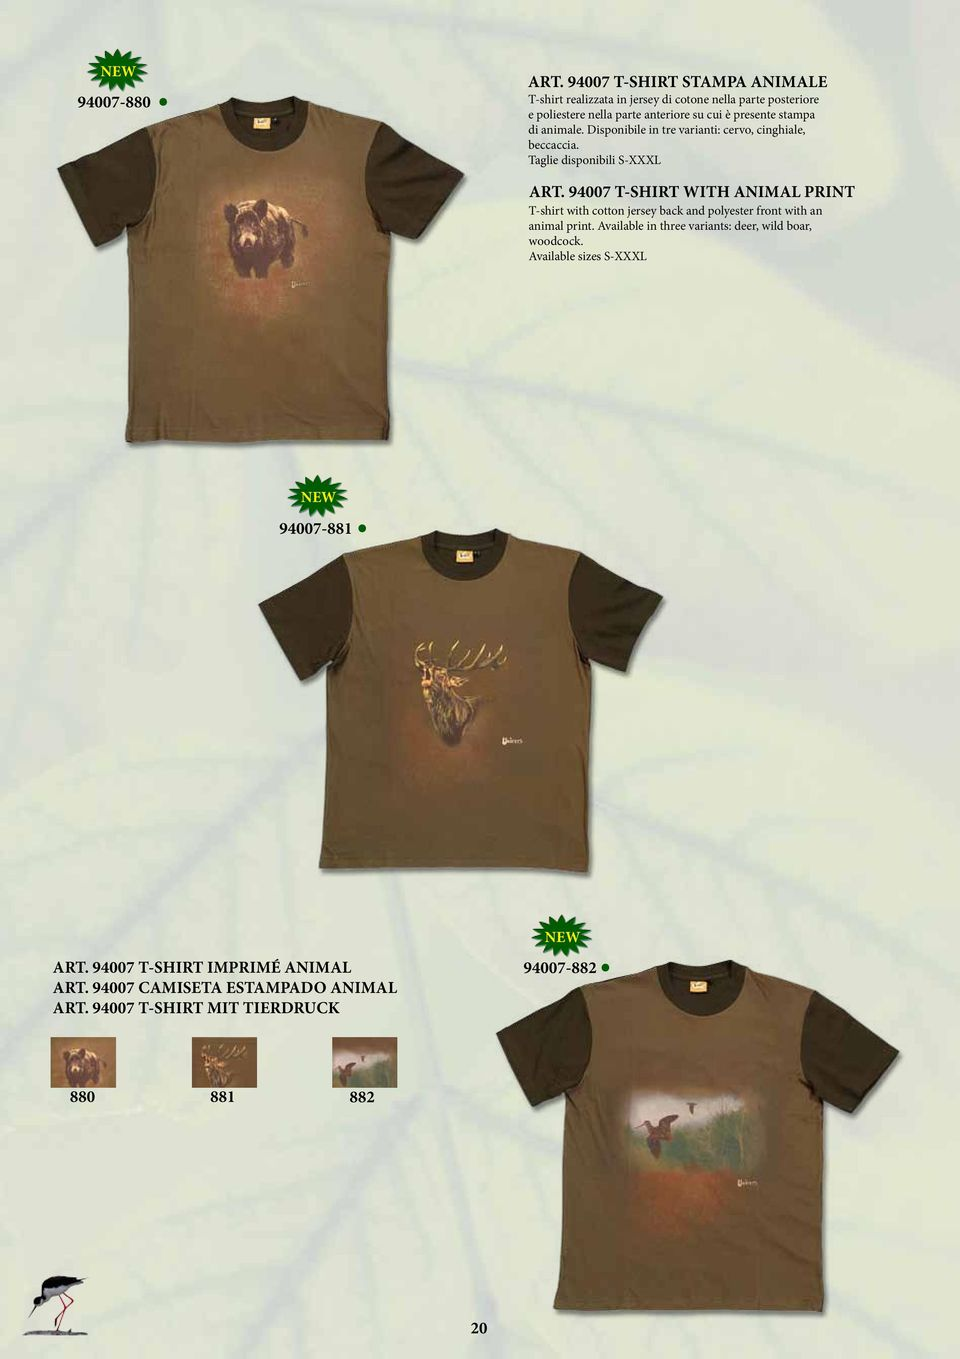 PRINT T-shirt with cotton jersey back and polyester front with an animal print Available in three variants: deer, wild boar, woodcock Available